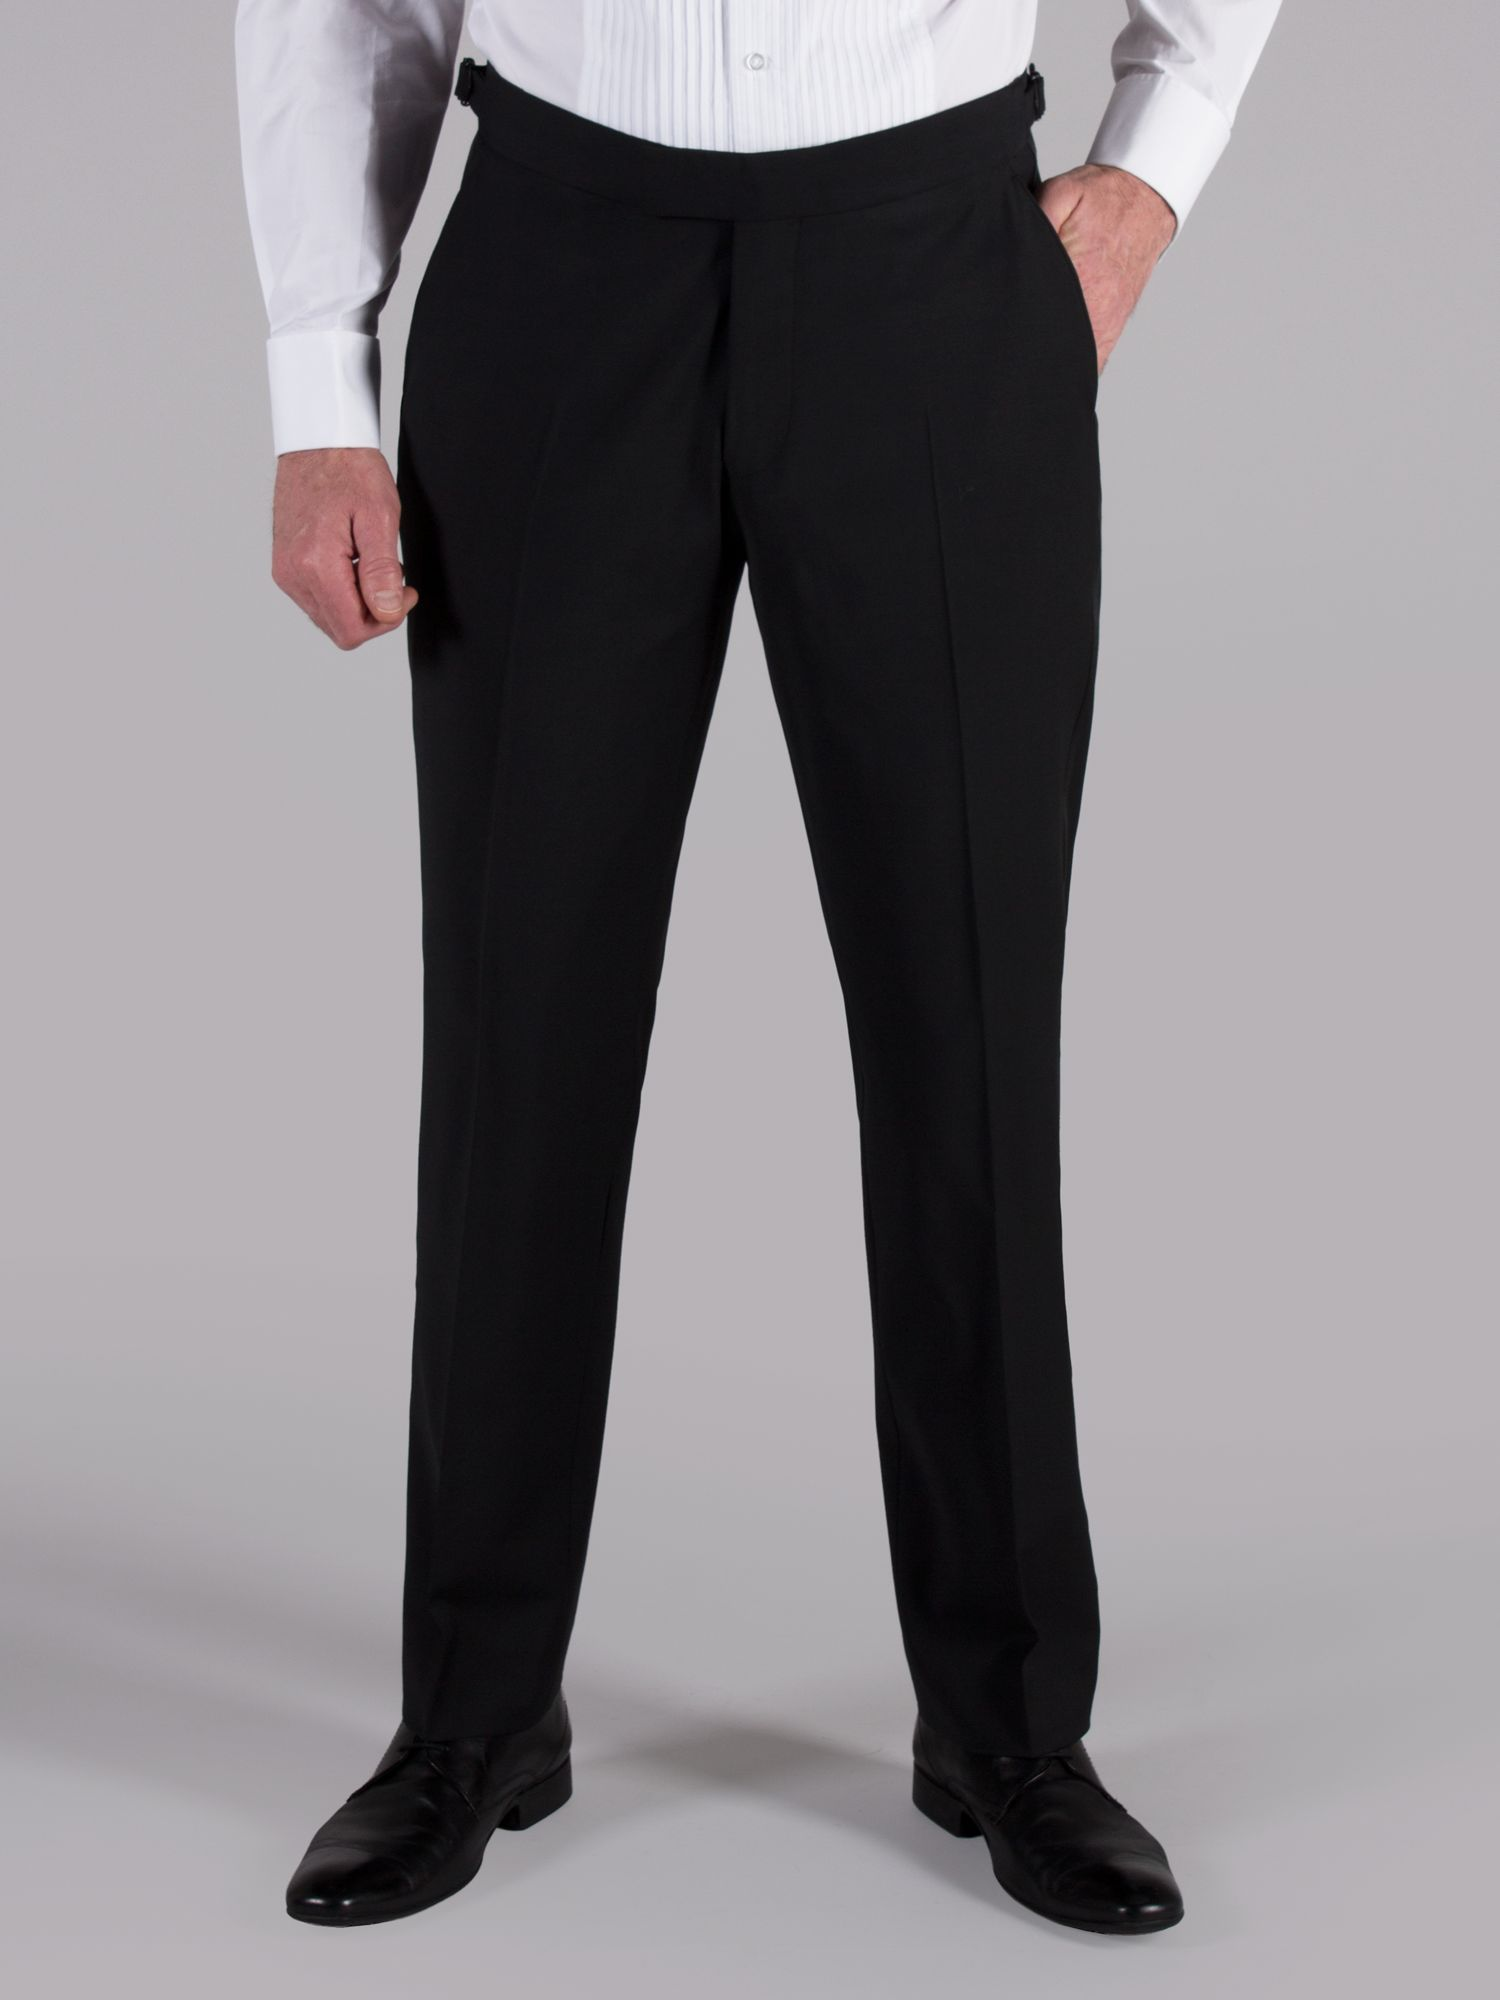 Black dresswear trousers